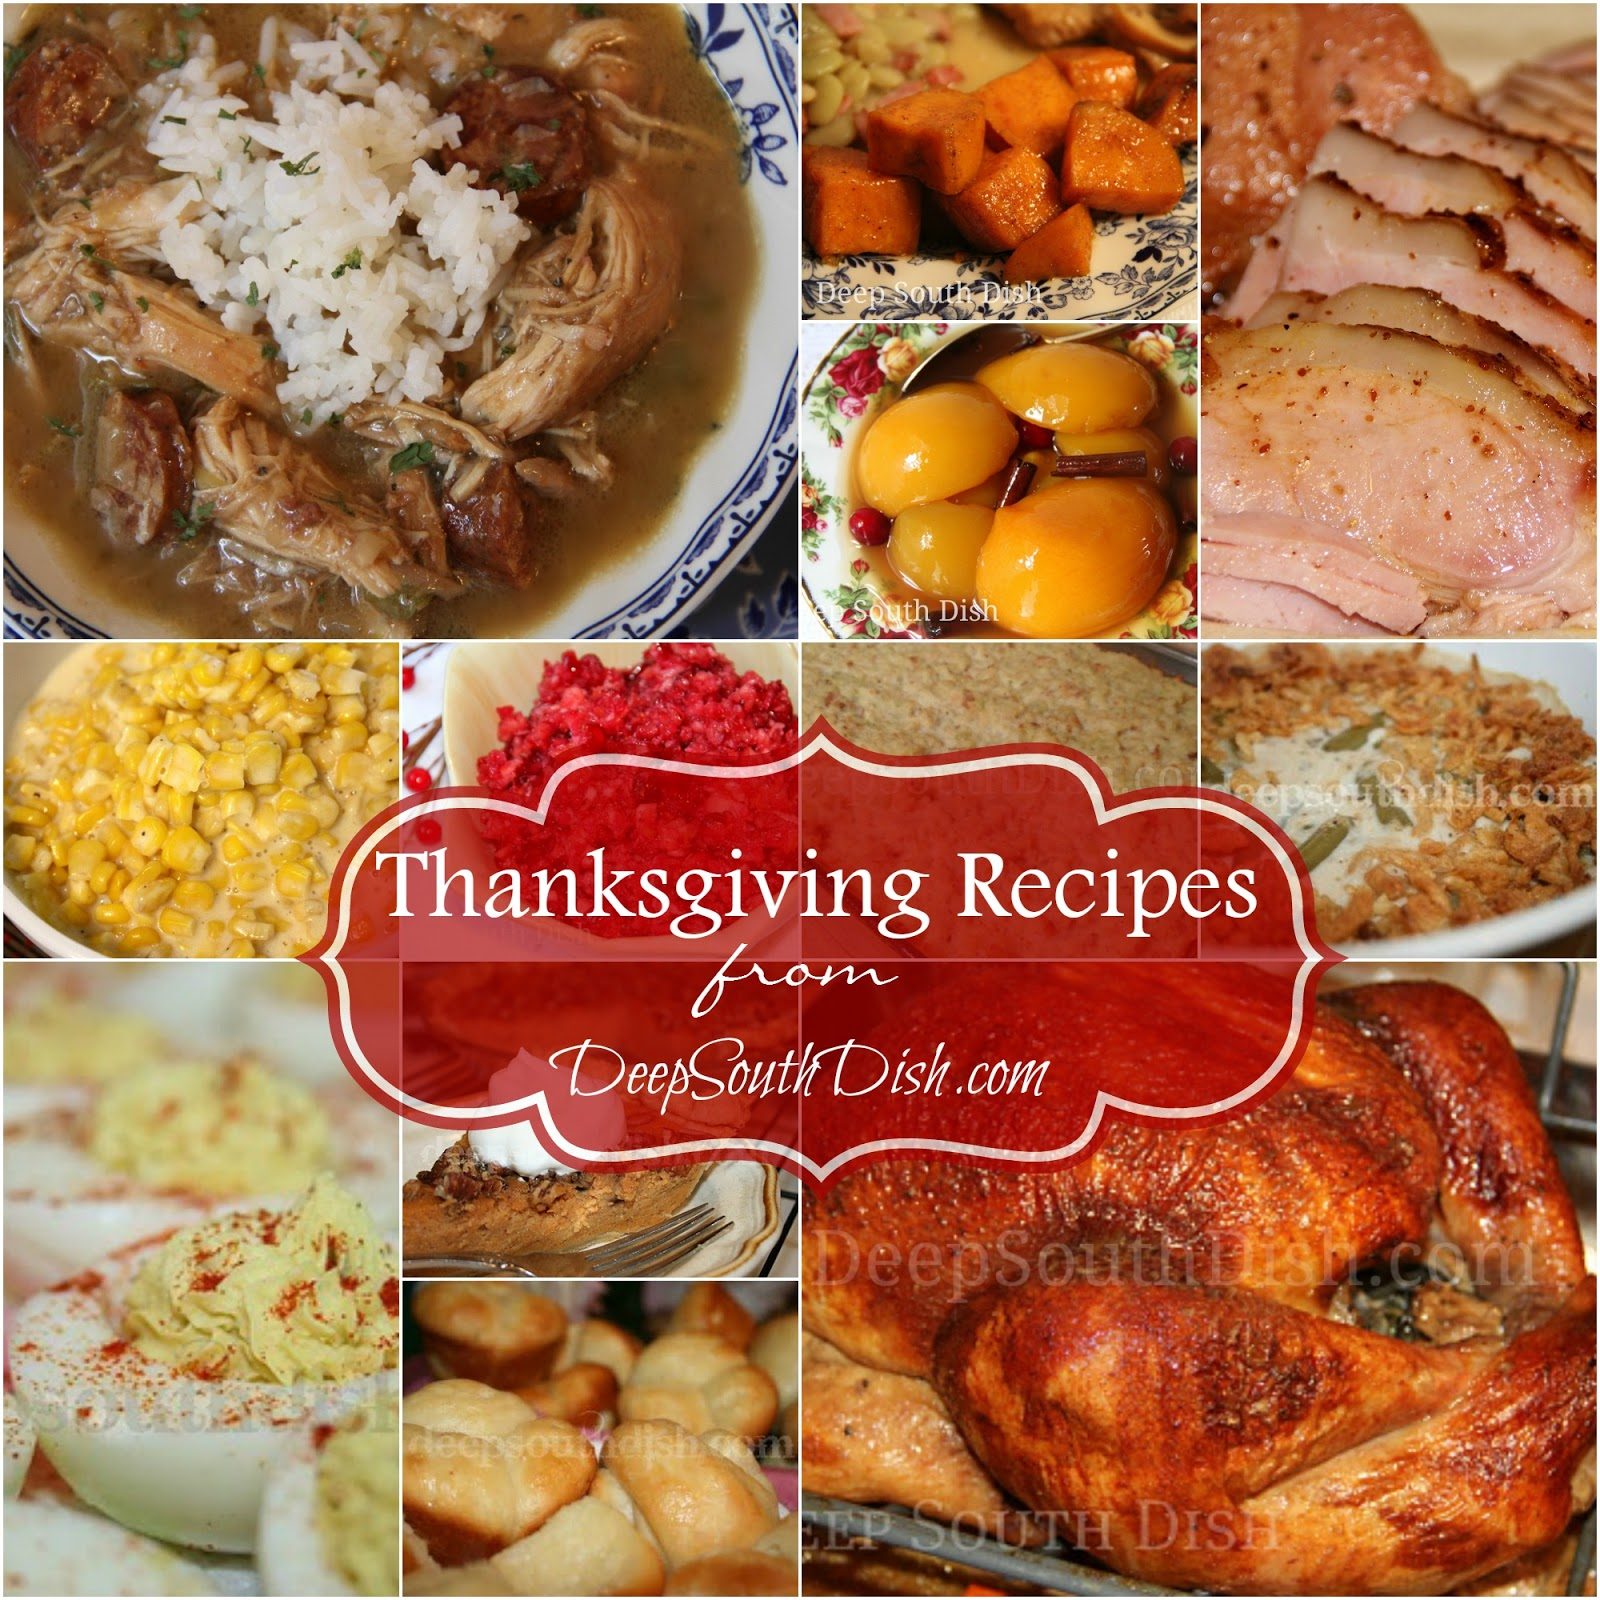 Deep south dish deep south southern thanksgiving recipes and menu ideas traditional and classic deep south favorite southern thanksgiving recipes all from deep south dish forumfinder Image collections